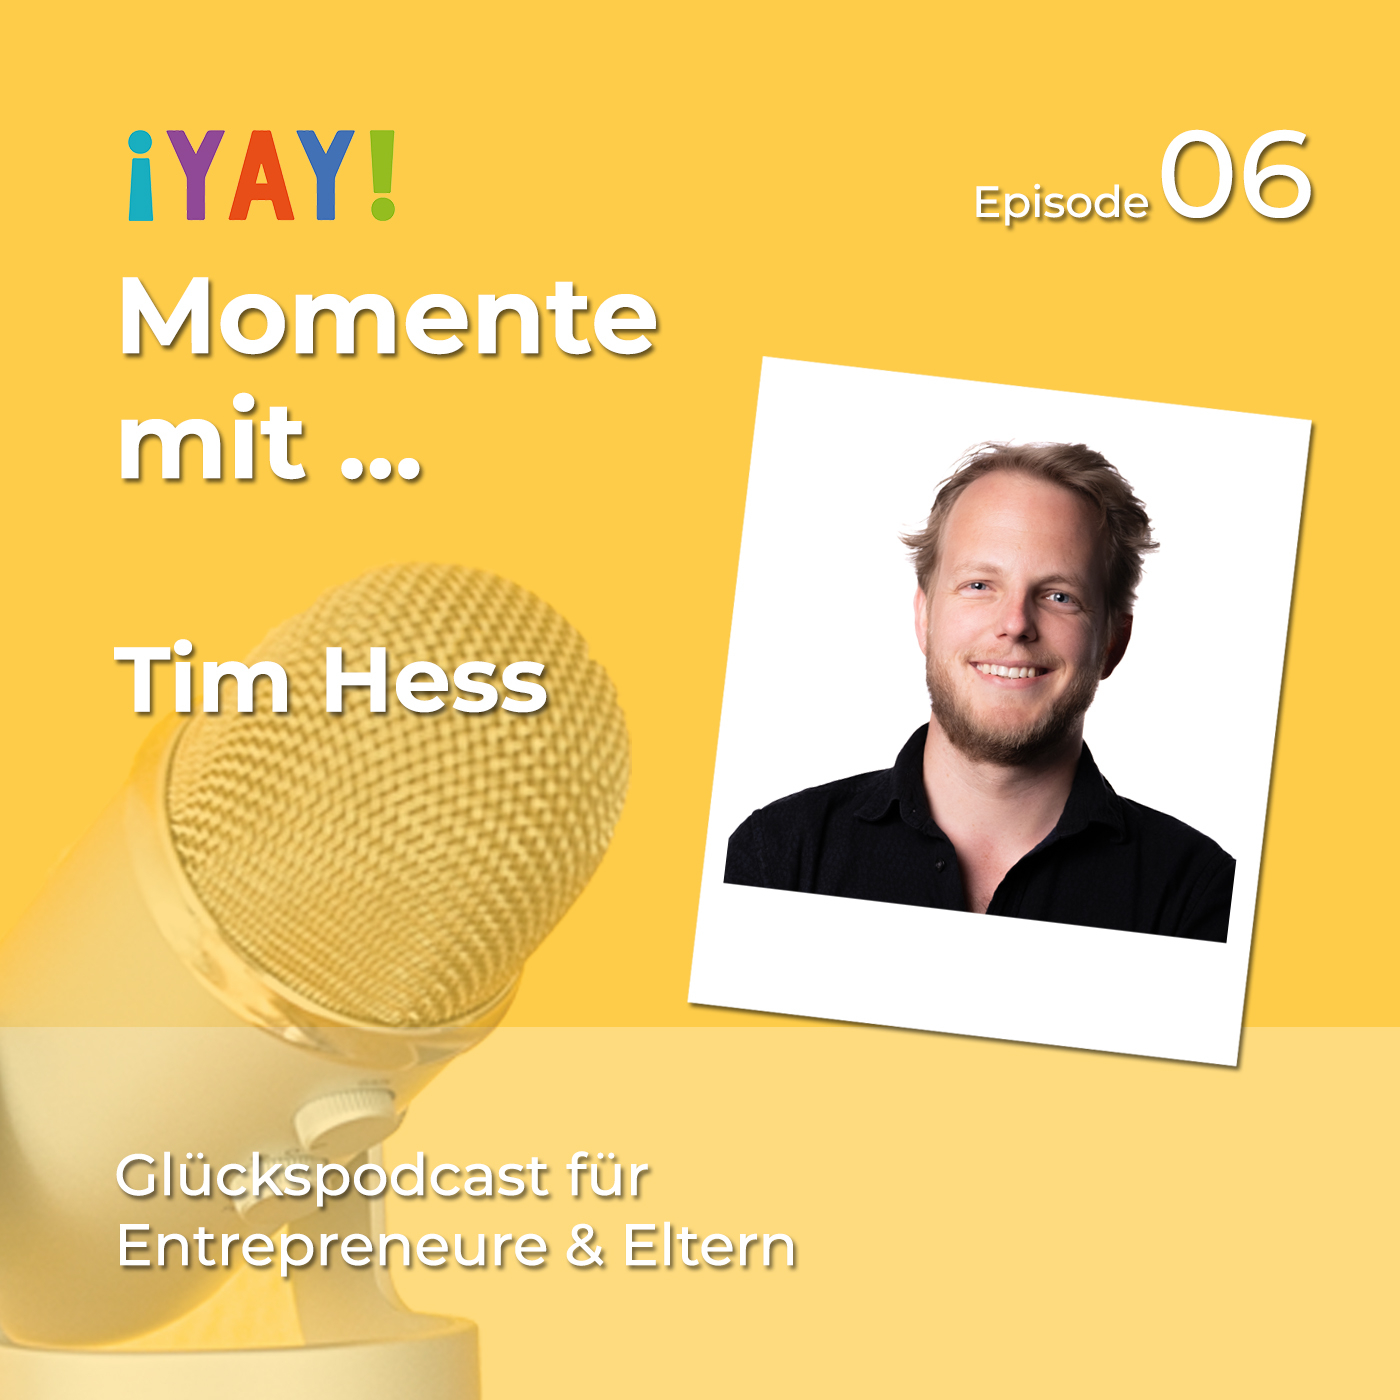 Episode 06: Yay-Momente mit ... Tim Hess